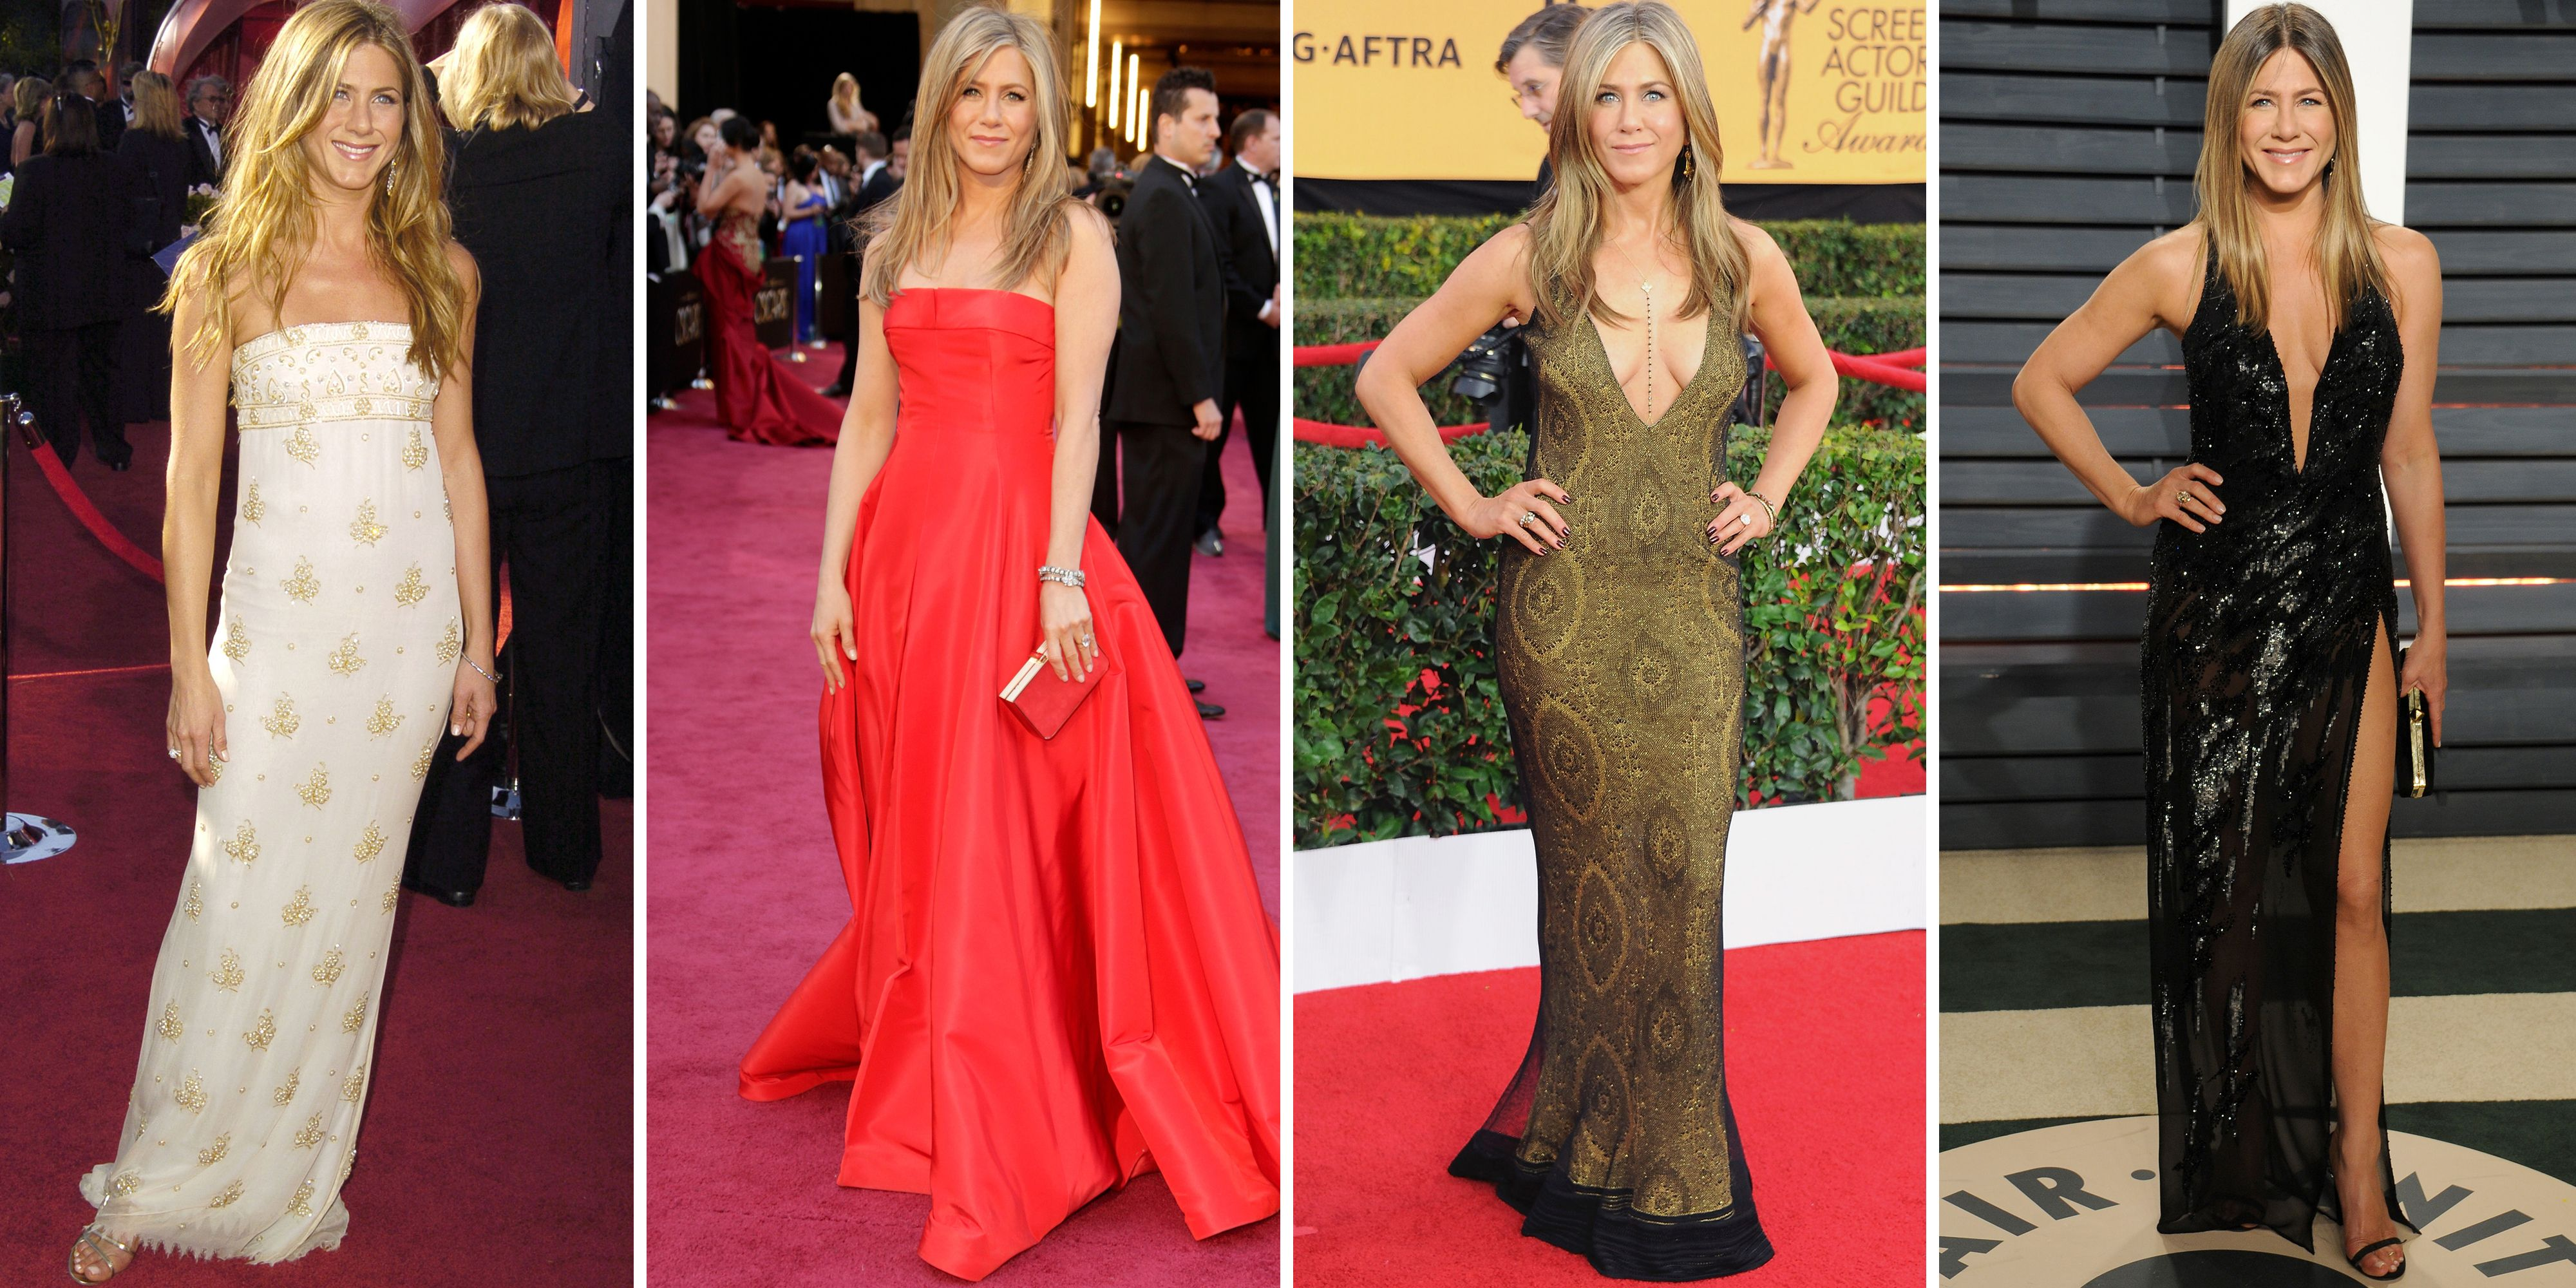 Jennifer Aniston's Best Red Carpet Looks of All Time